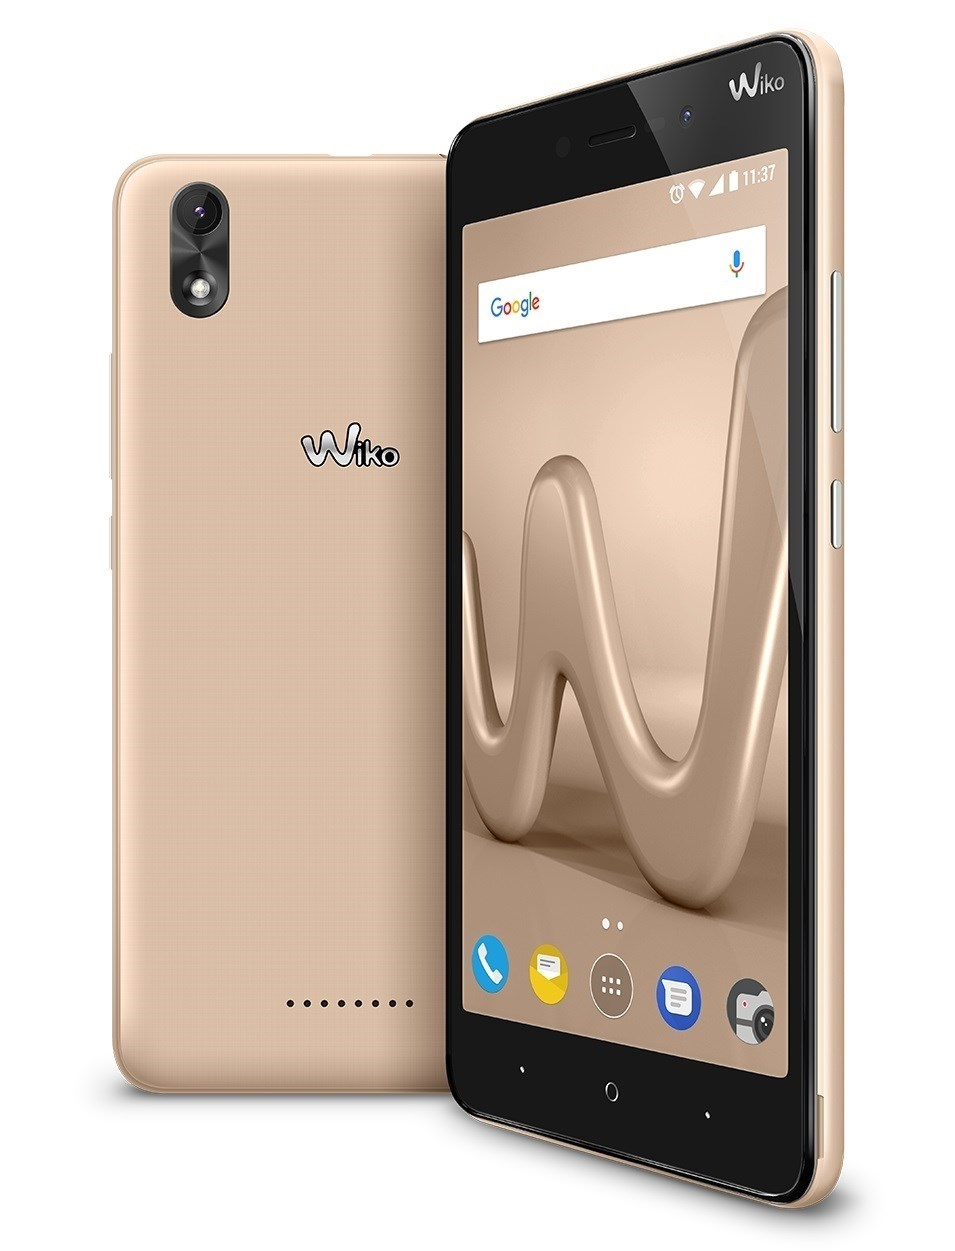 TELEFONO WIKO LENNY 4 PLUS 16Gb 1Gb 3G GOLD 5.5""